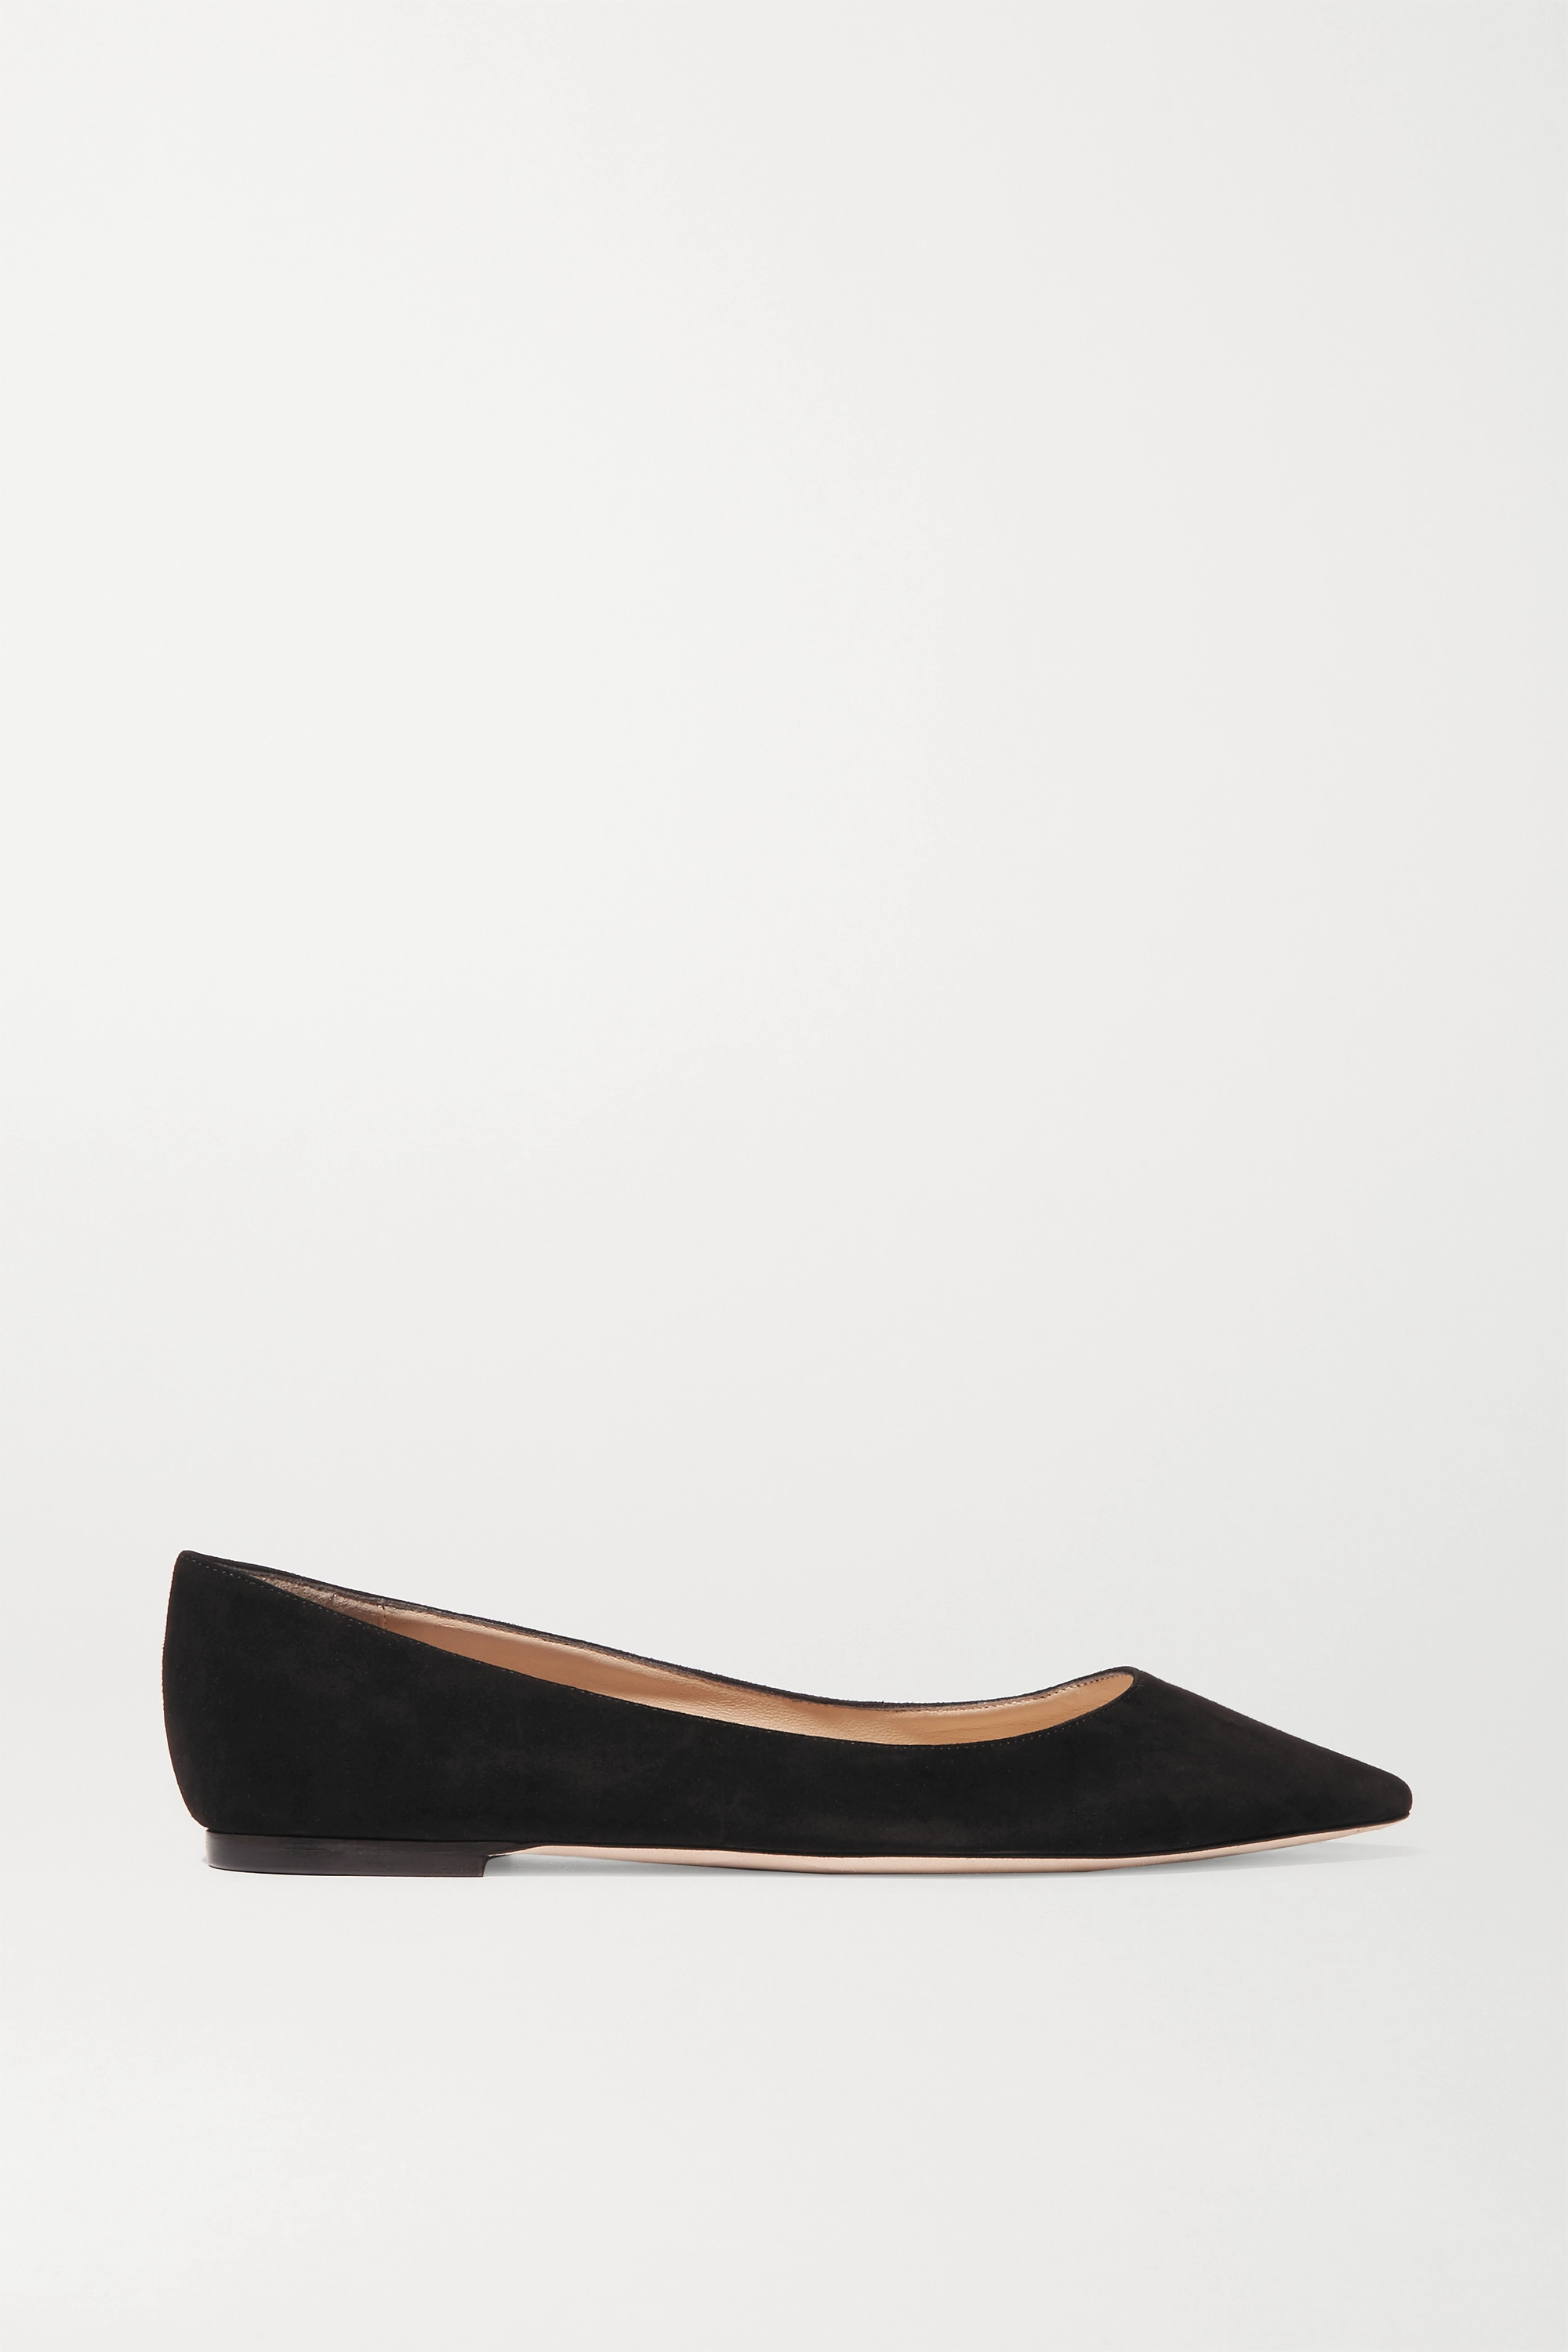 Black Romy suede point-toe flats